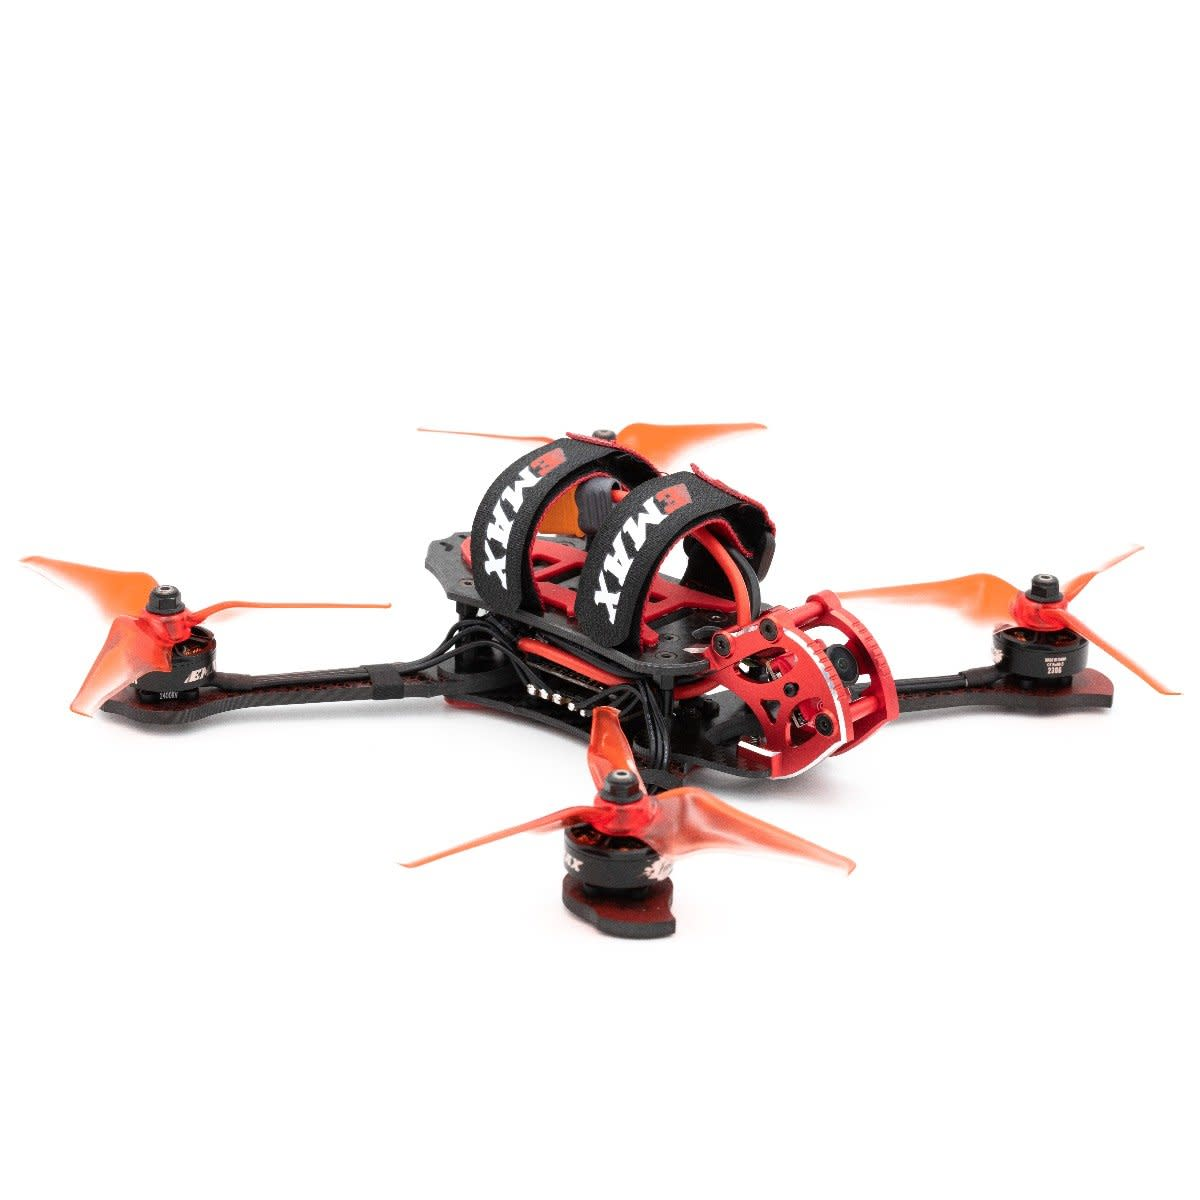 Emax Buzz 245mm/5-inch F4 1700KV 5-6S Freestyle FPV Racing Drone BNF (FrSky)